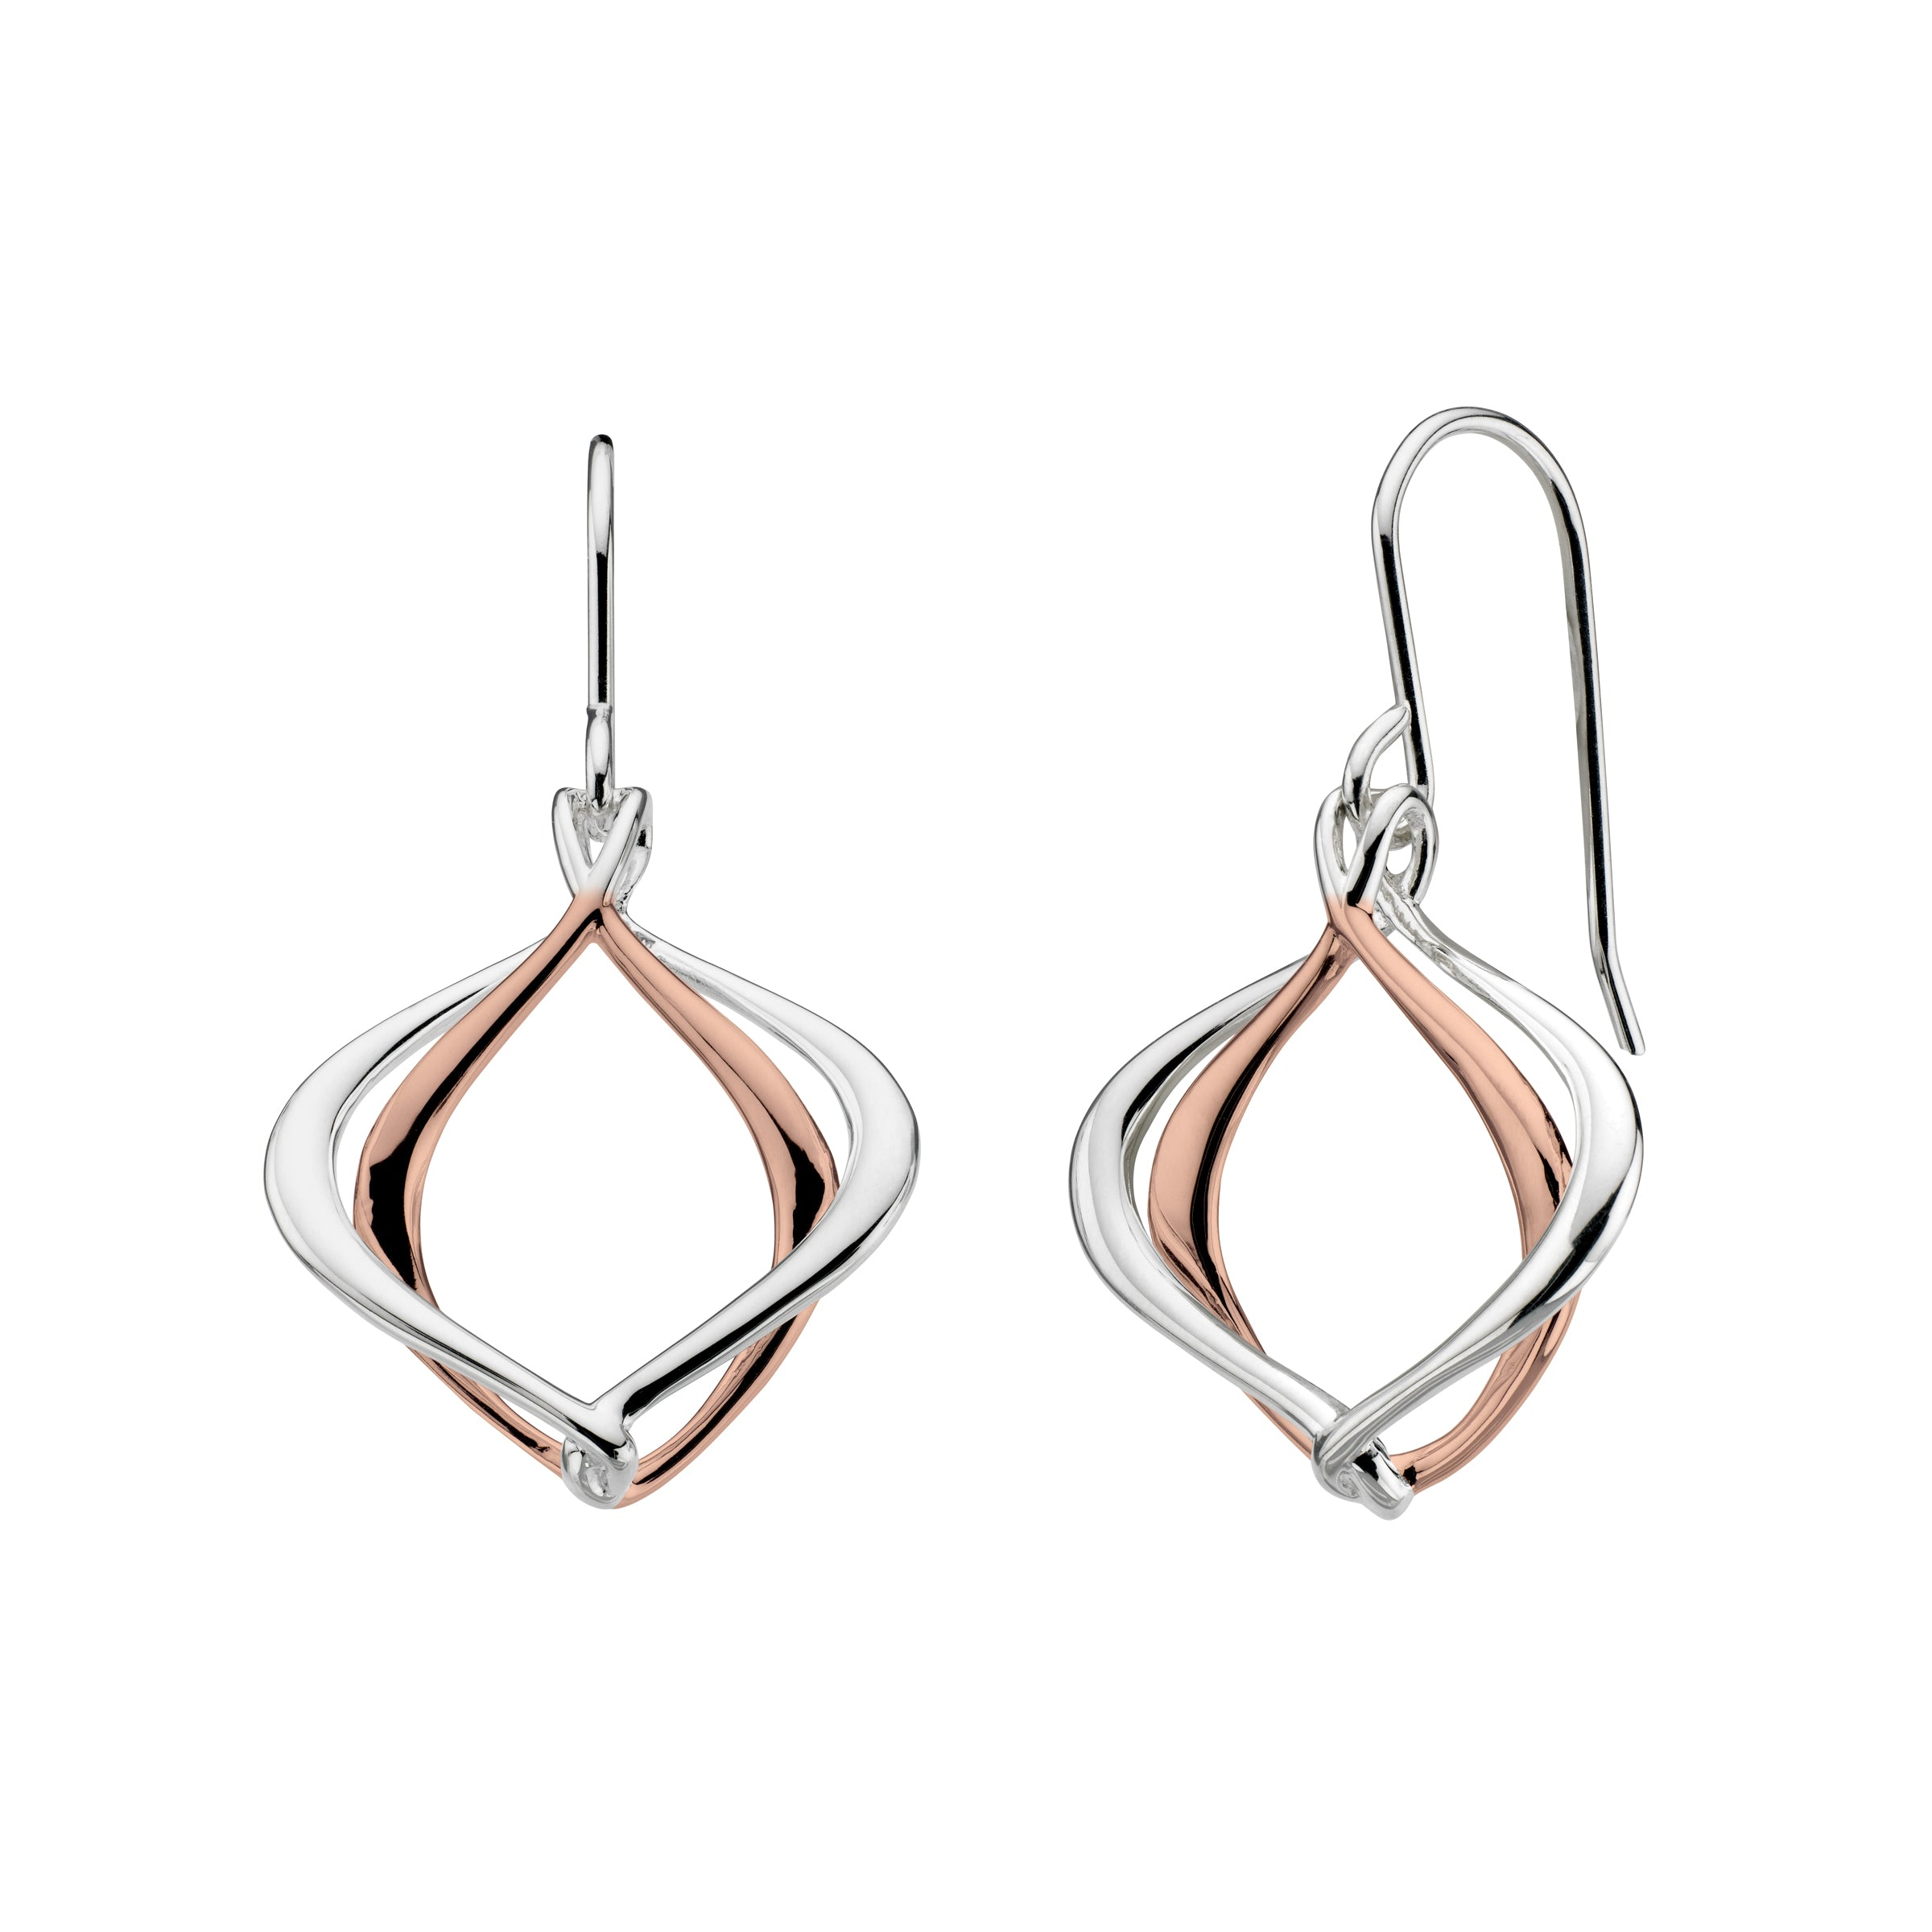 Alicia Drop Earrings, Sterling Silver with 18K Rose Gold Plating